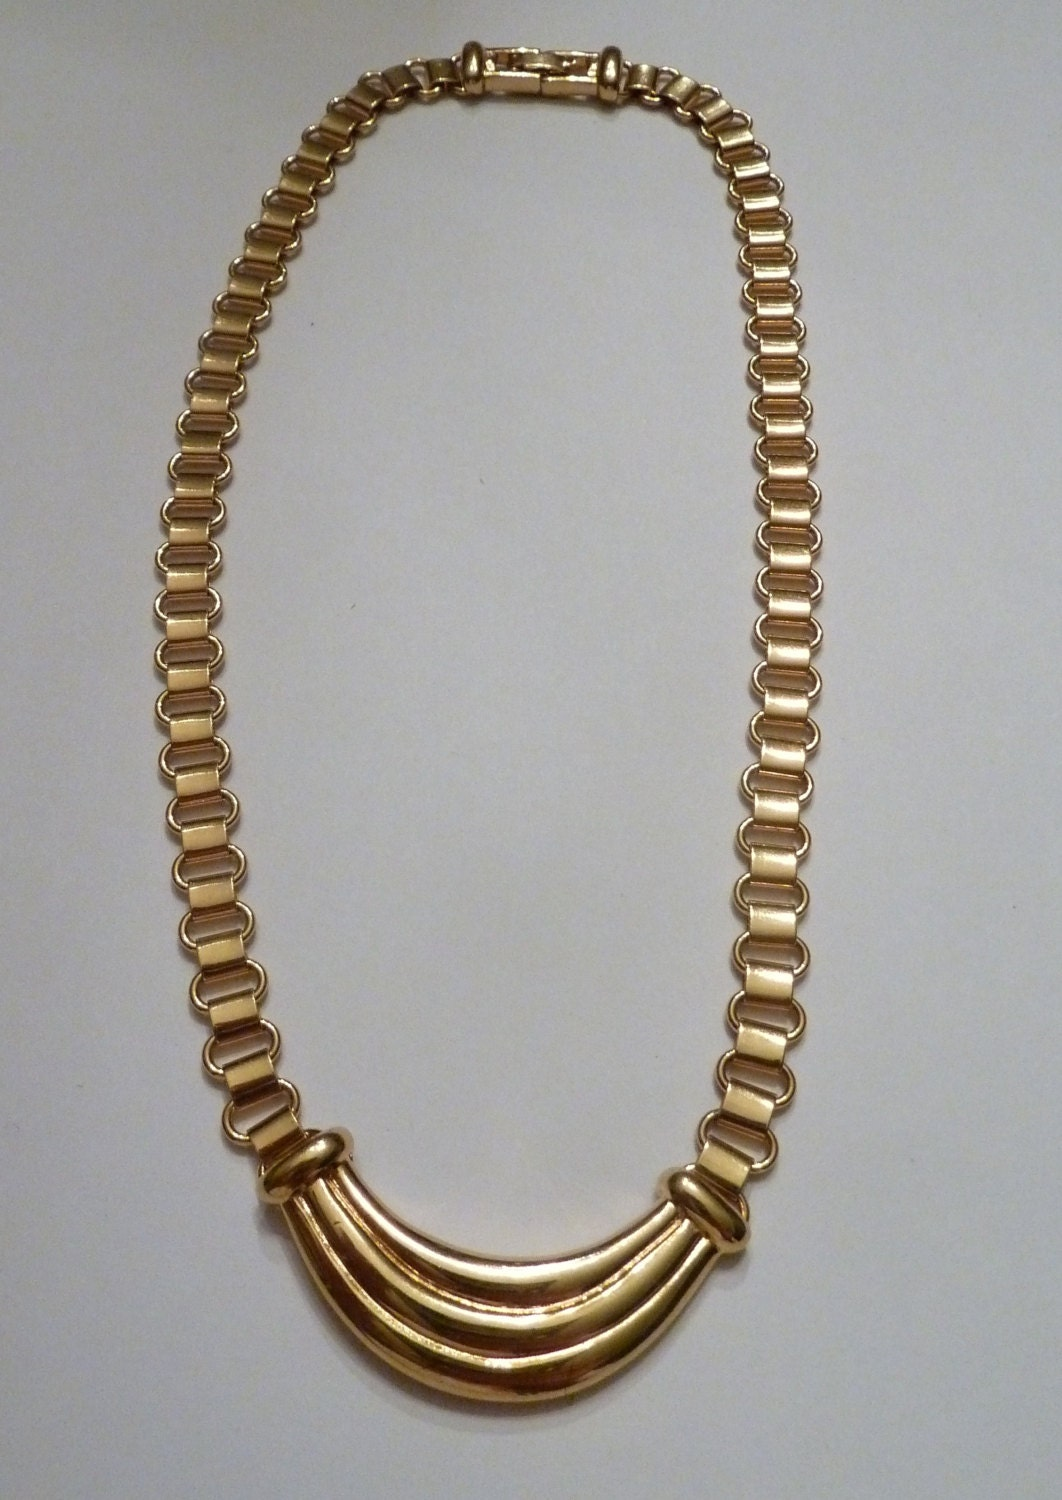 vintage gold monet necklace choker 1960s by